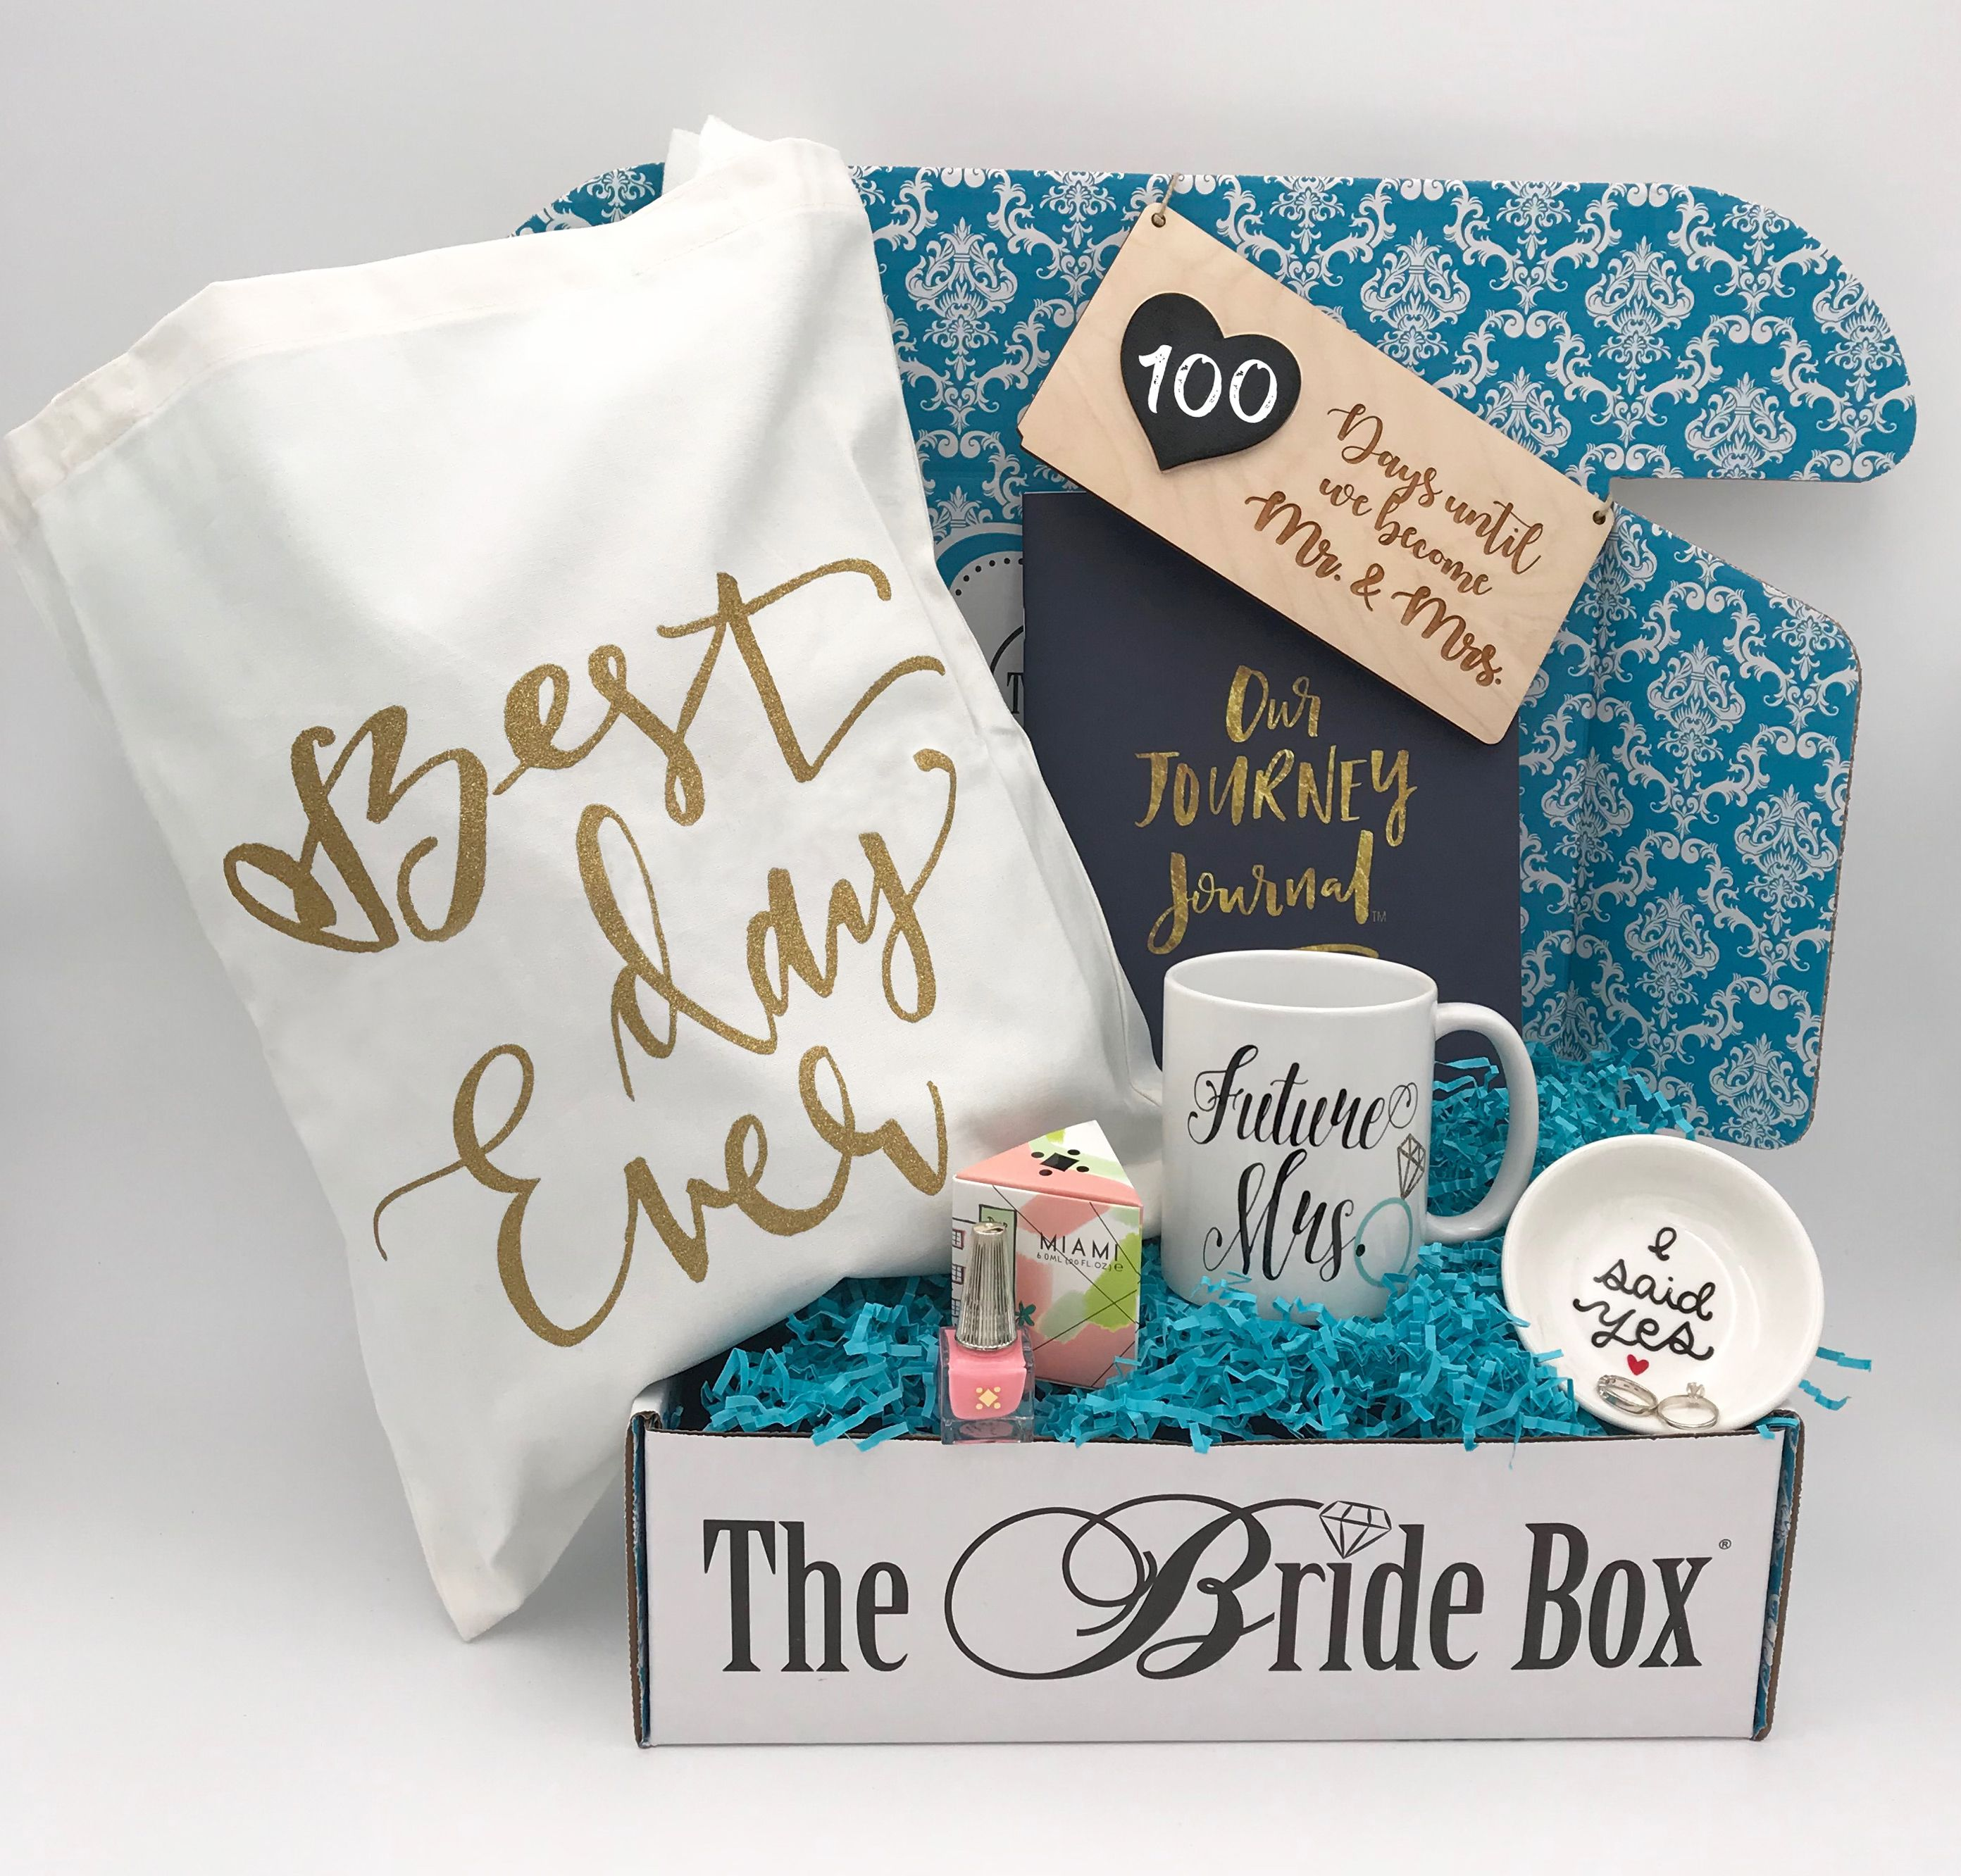 Monthly Subscription Box For Brides Bride To Be Box Wedding Subscription Box Bride